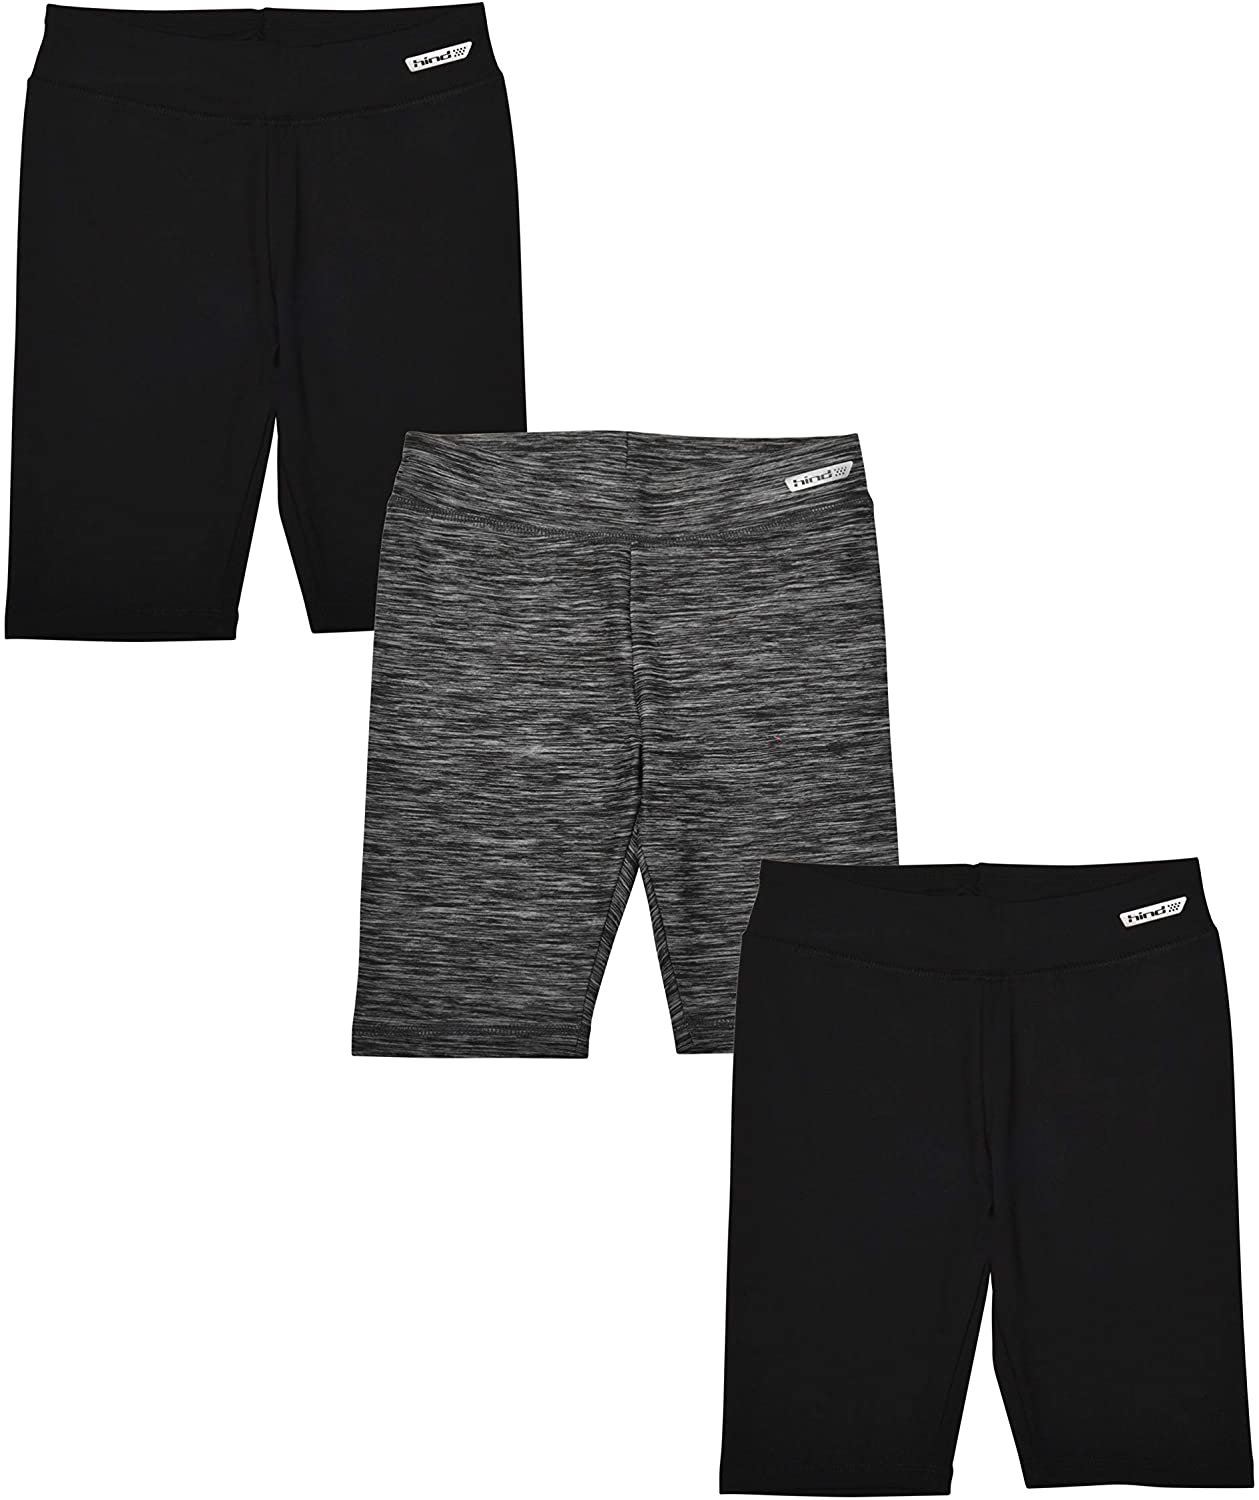 Hind 3-Pack Girls Sale Athletic Workout Max 78% OFF Shorts Clothes Bike